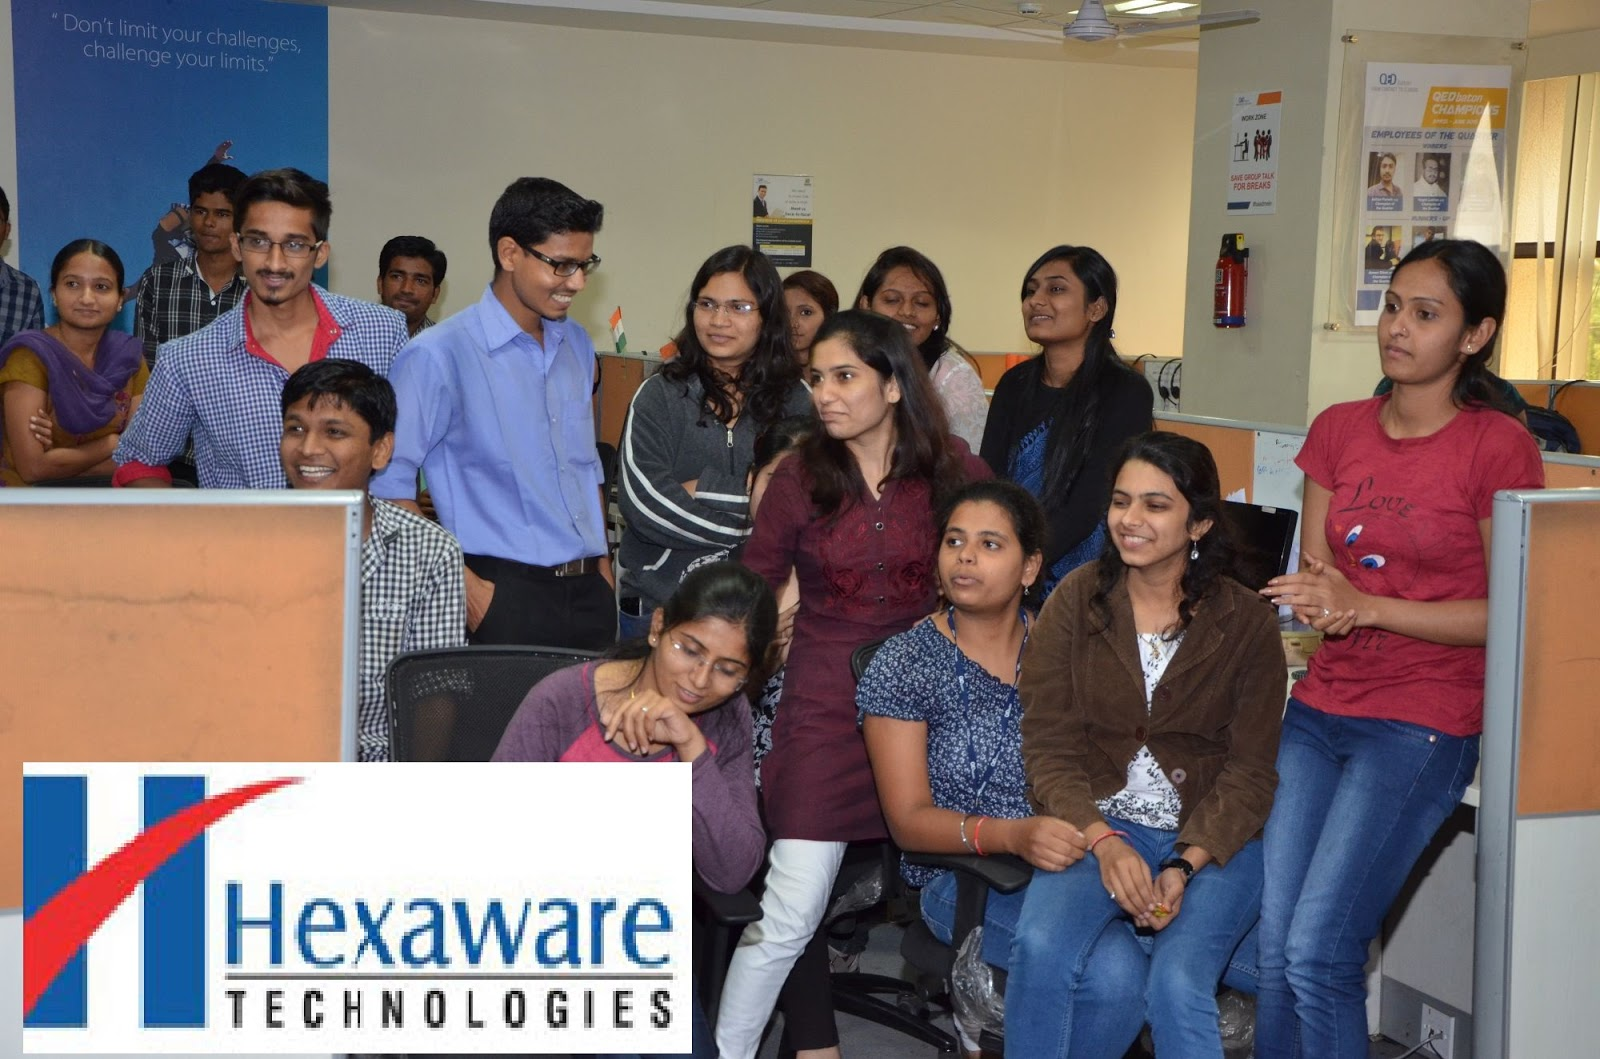 On 28 july 2014 hexaware technologies announced the appointment of r srikrishna as the chief executive officer the company has its headquarters in mumbai